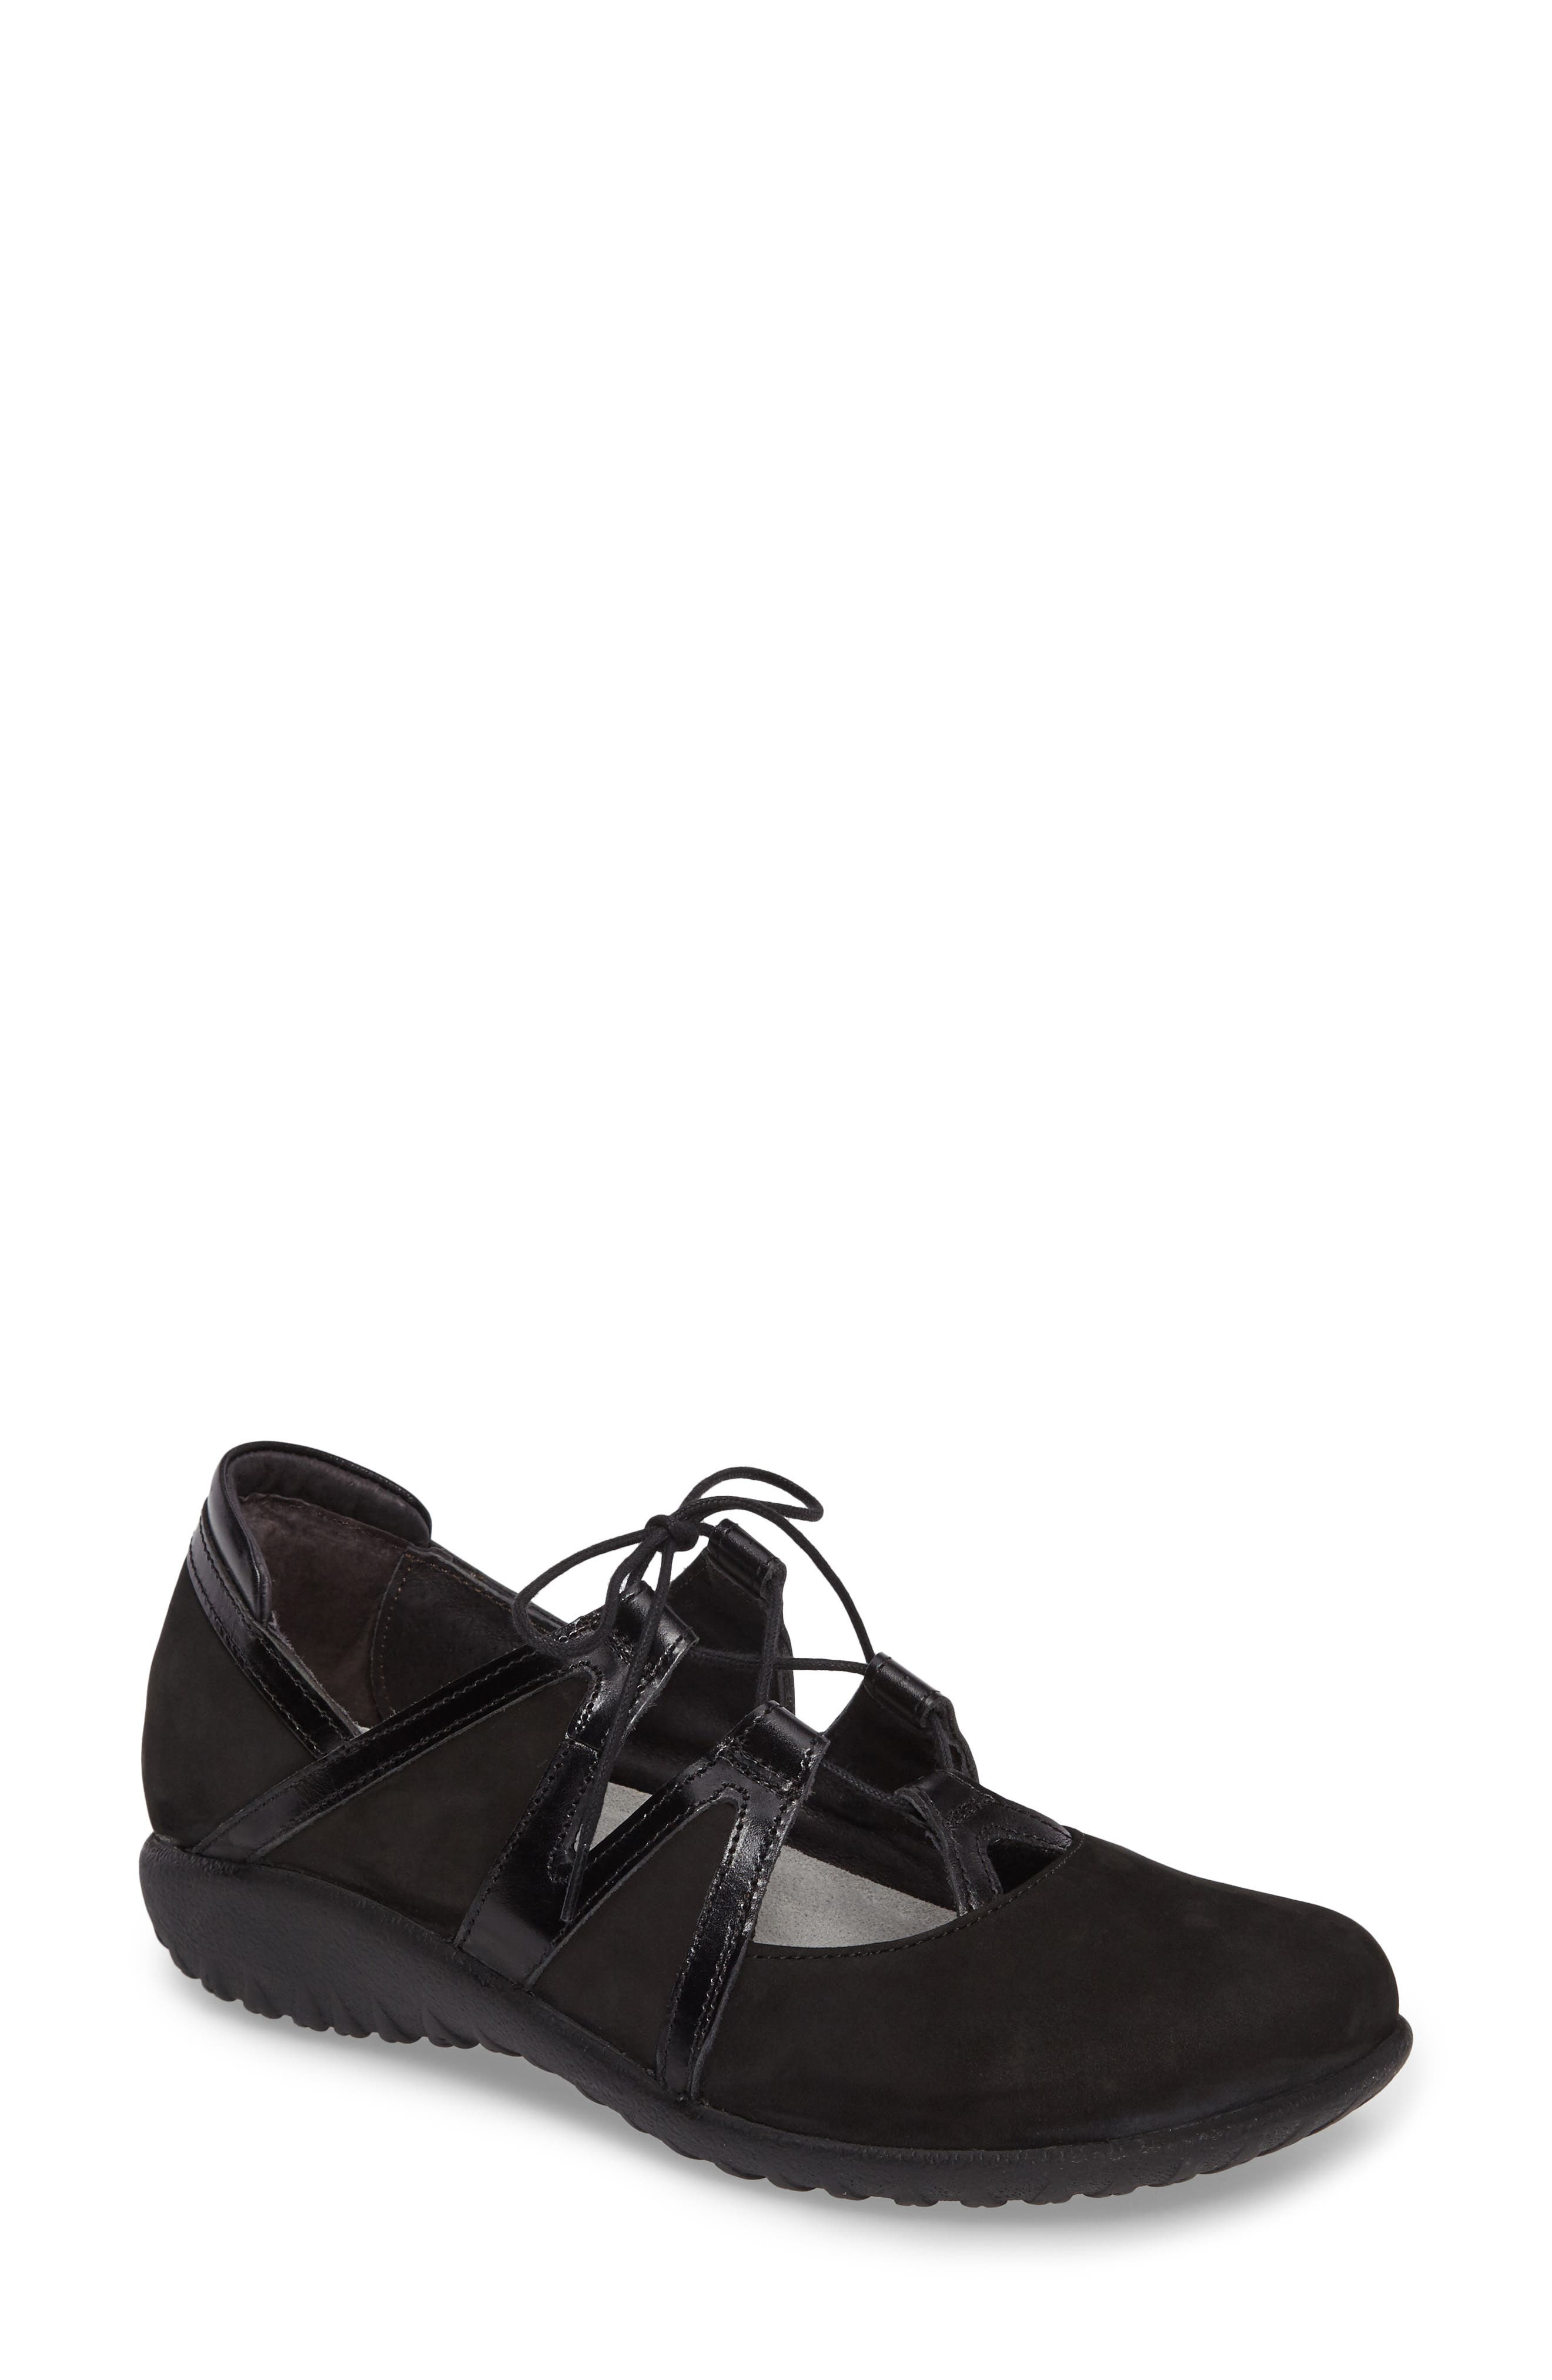 Timu Ghillie Lace Flat,                         Main,                         color, Black Madras Leather